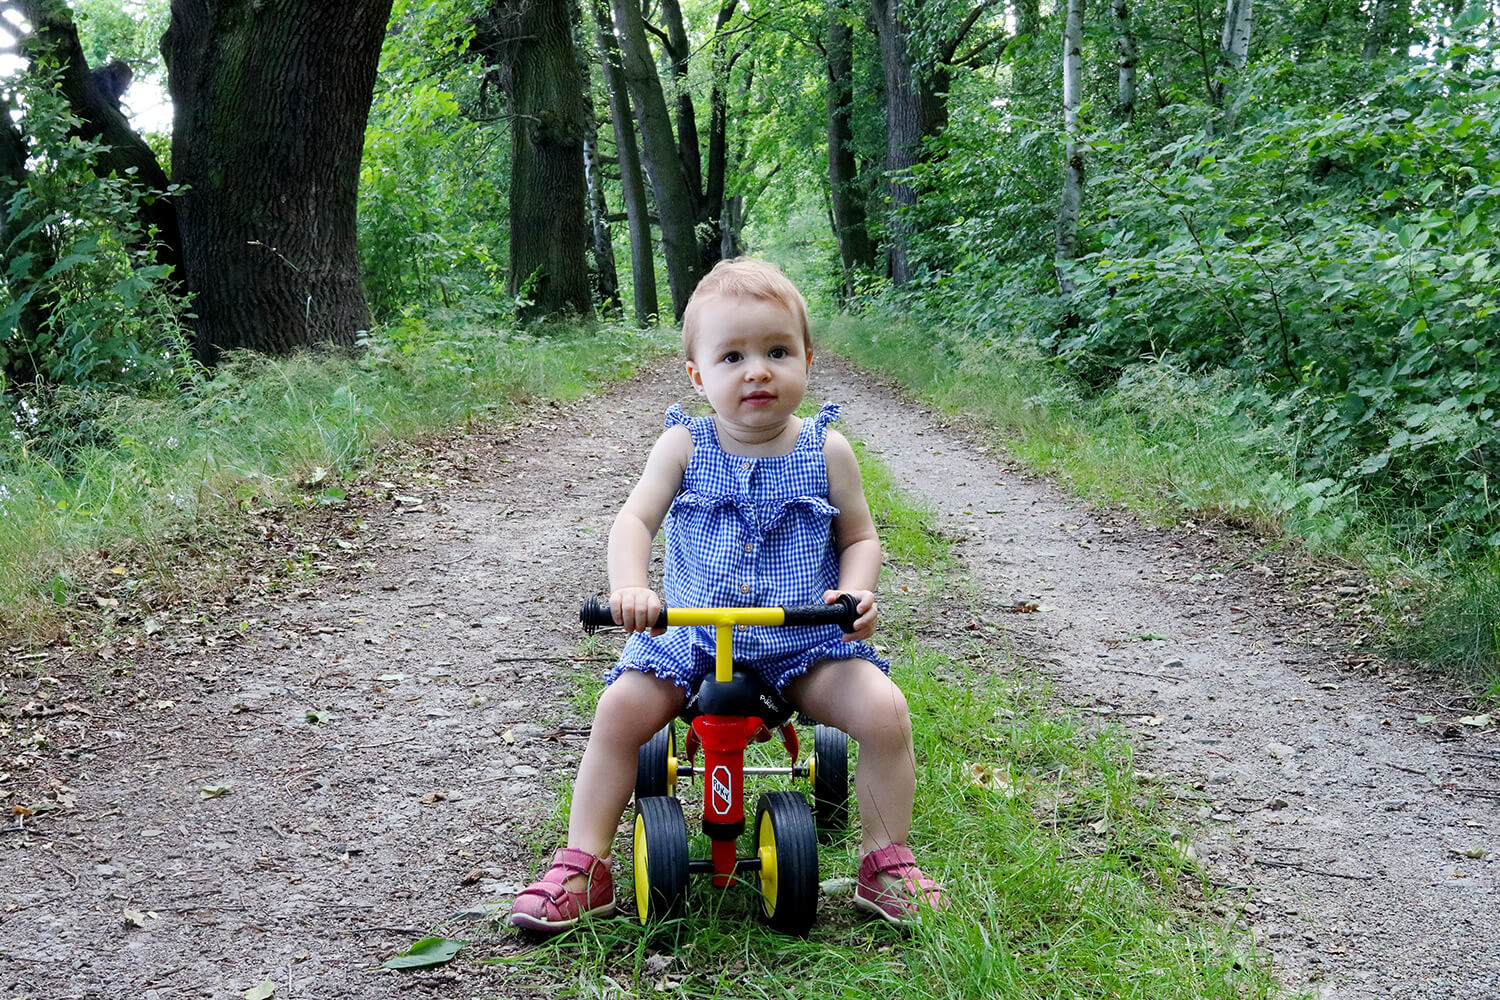 family photo of a little girl on a balance bike in nature